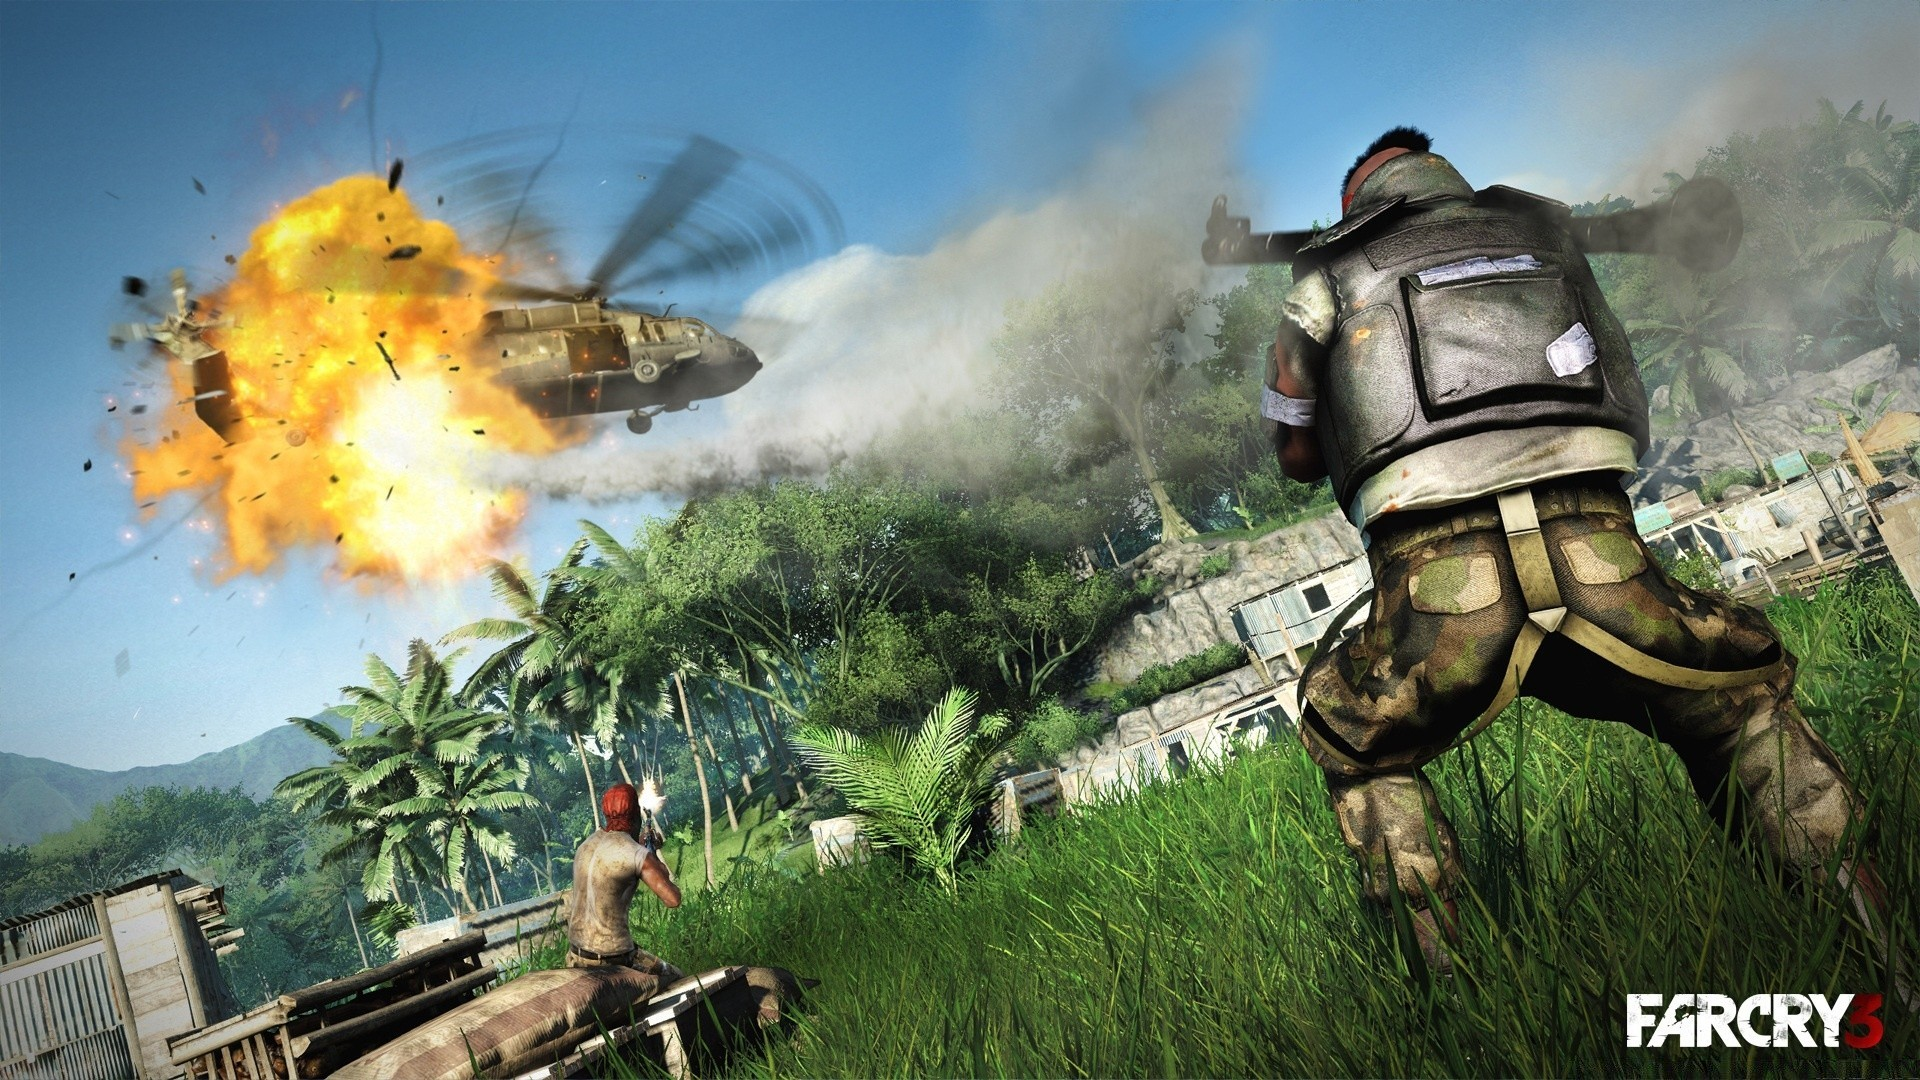 Far Cry 3 Video Game Android Wallpapers For Free